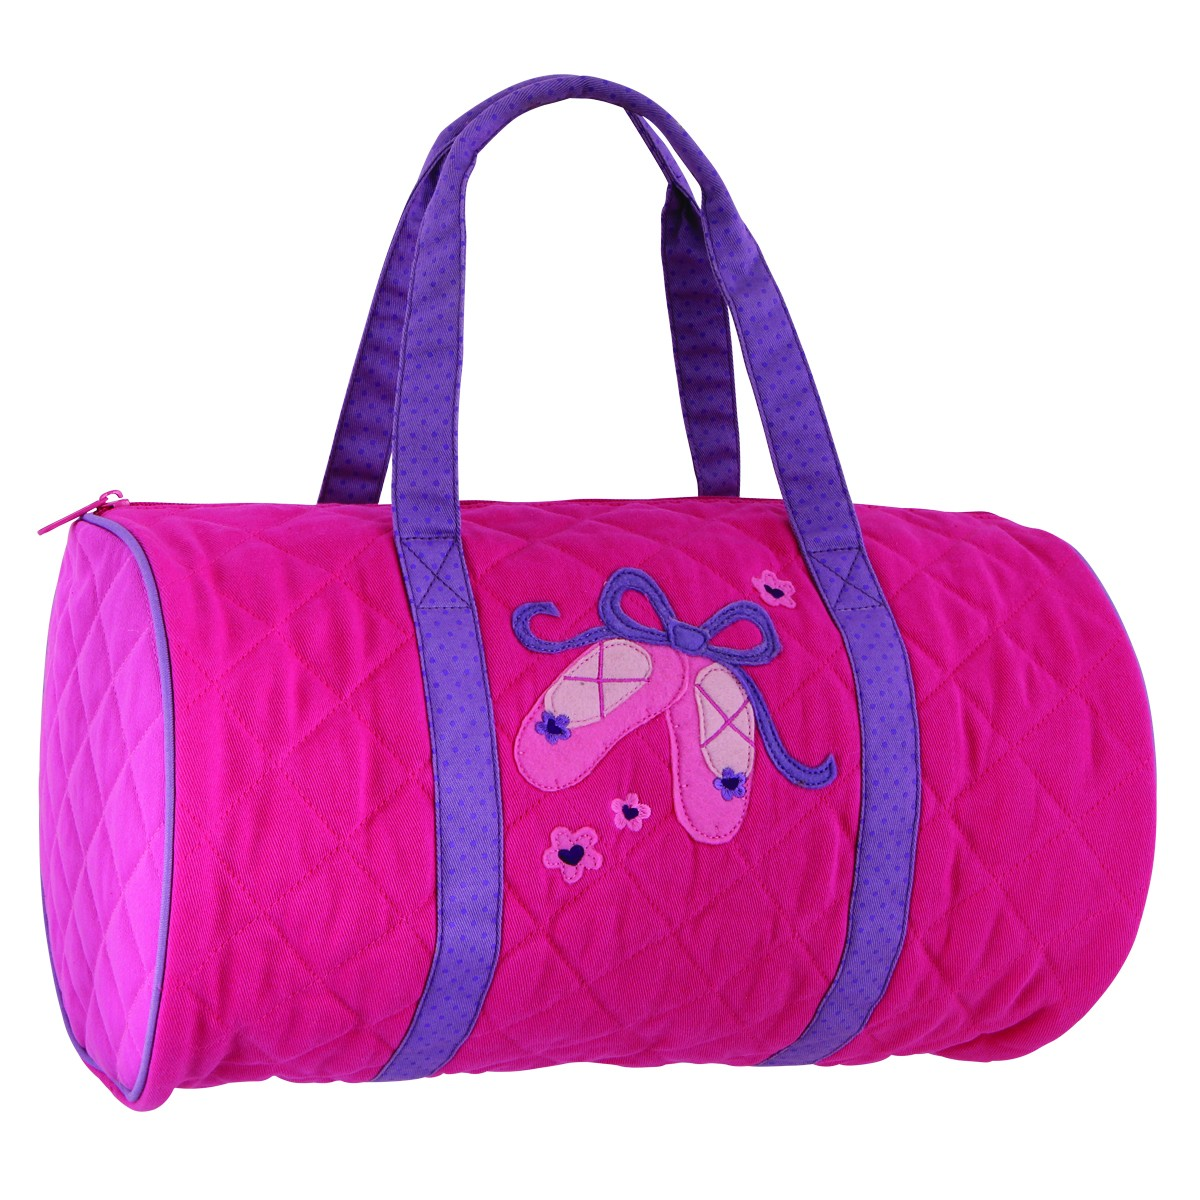 young girl bag.jpg